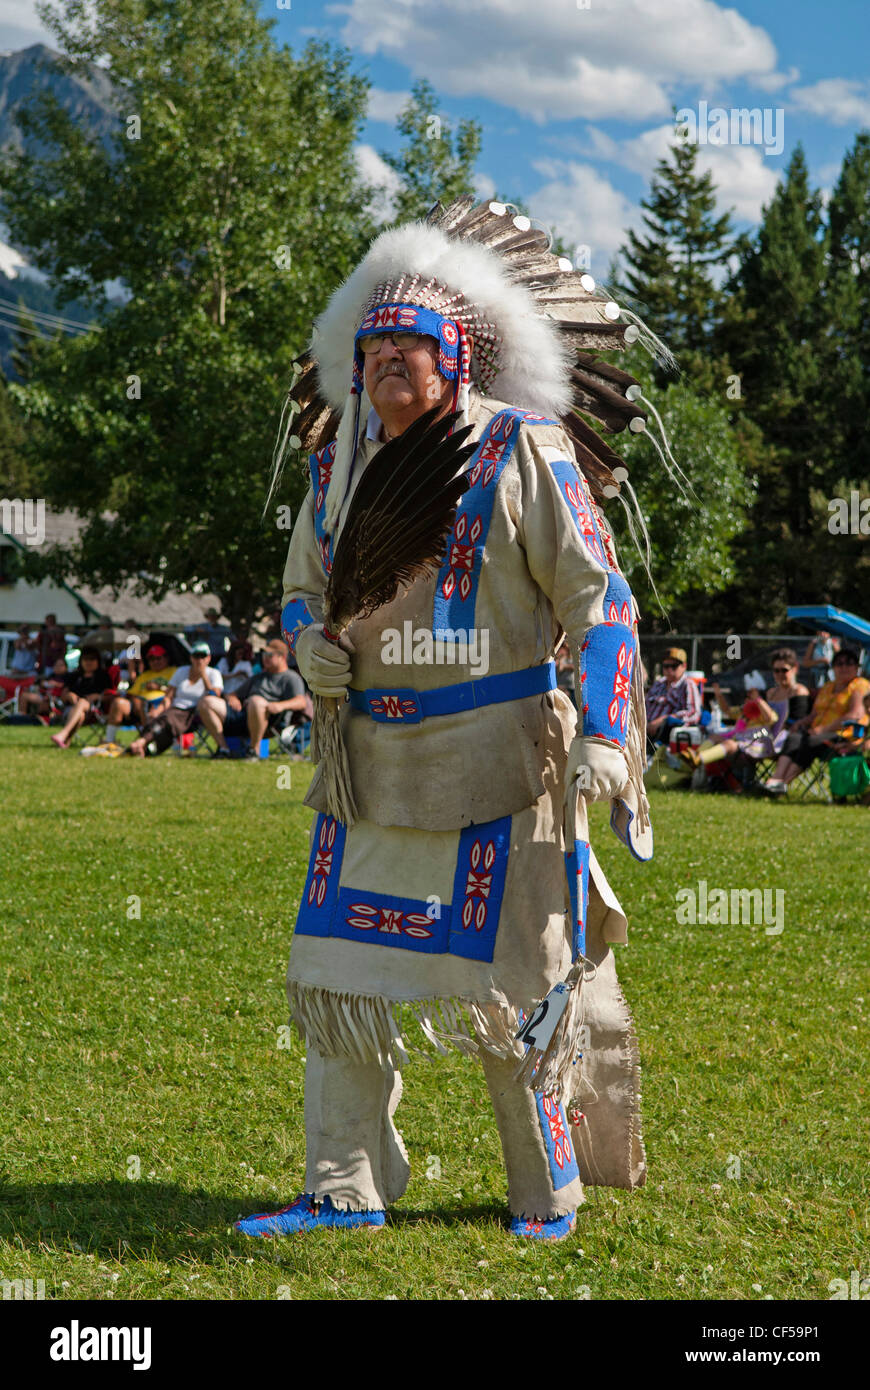 Waterton Lakes National Park Buckskin Dance at the Blackfoot Arts & Heritage Festival Pow Wow organized by Parks - Stock Image